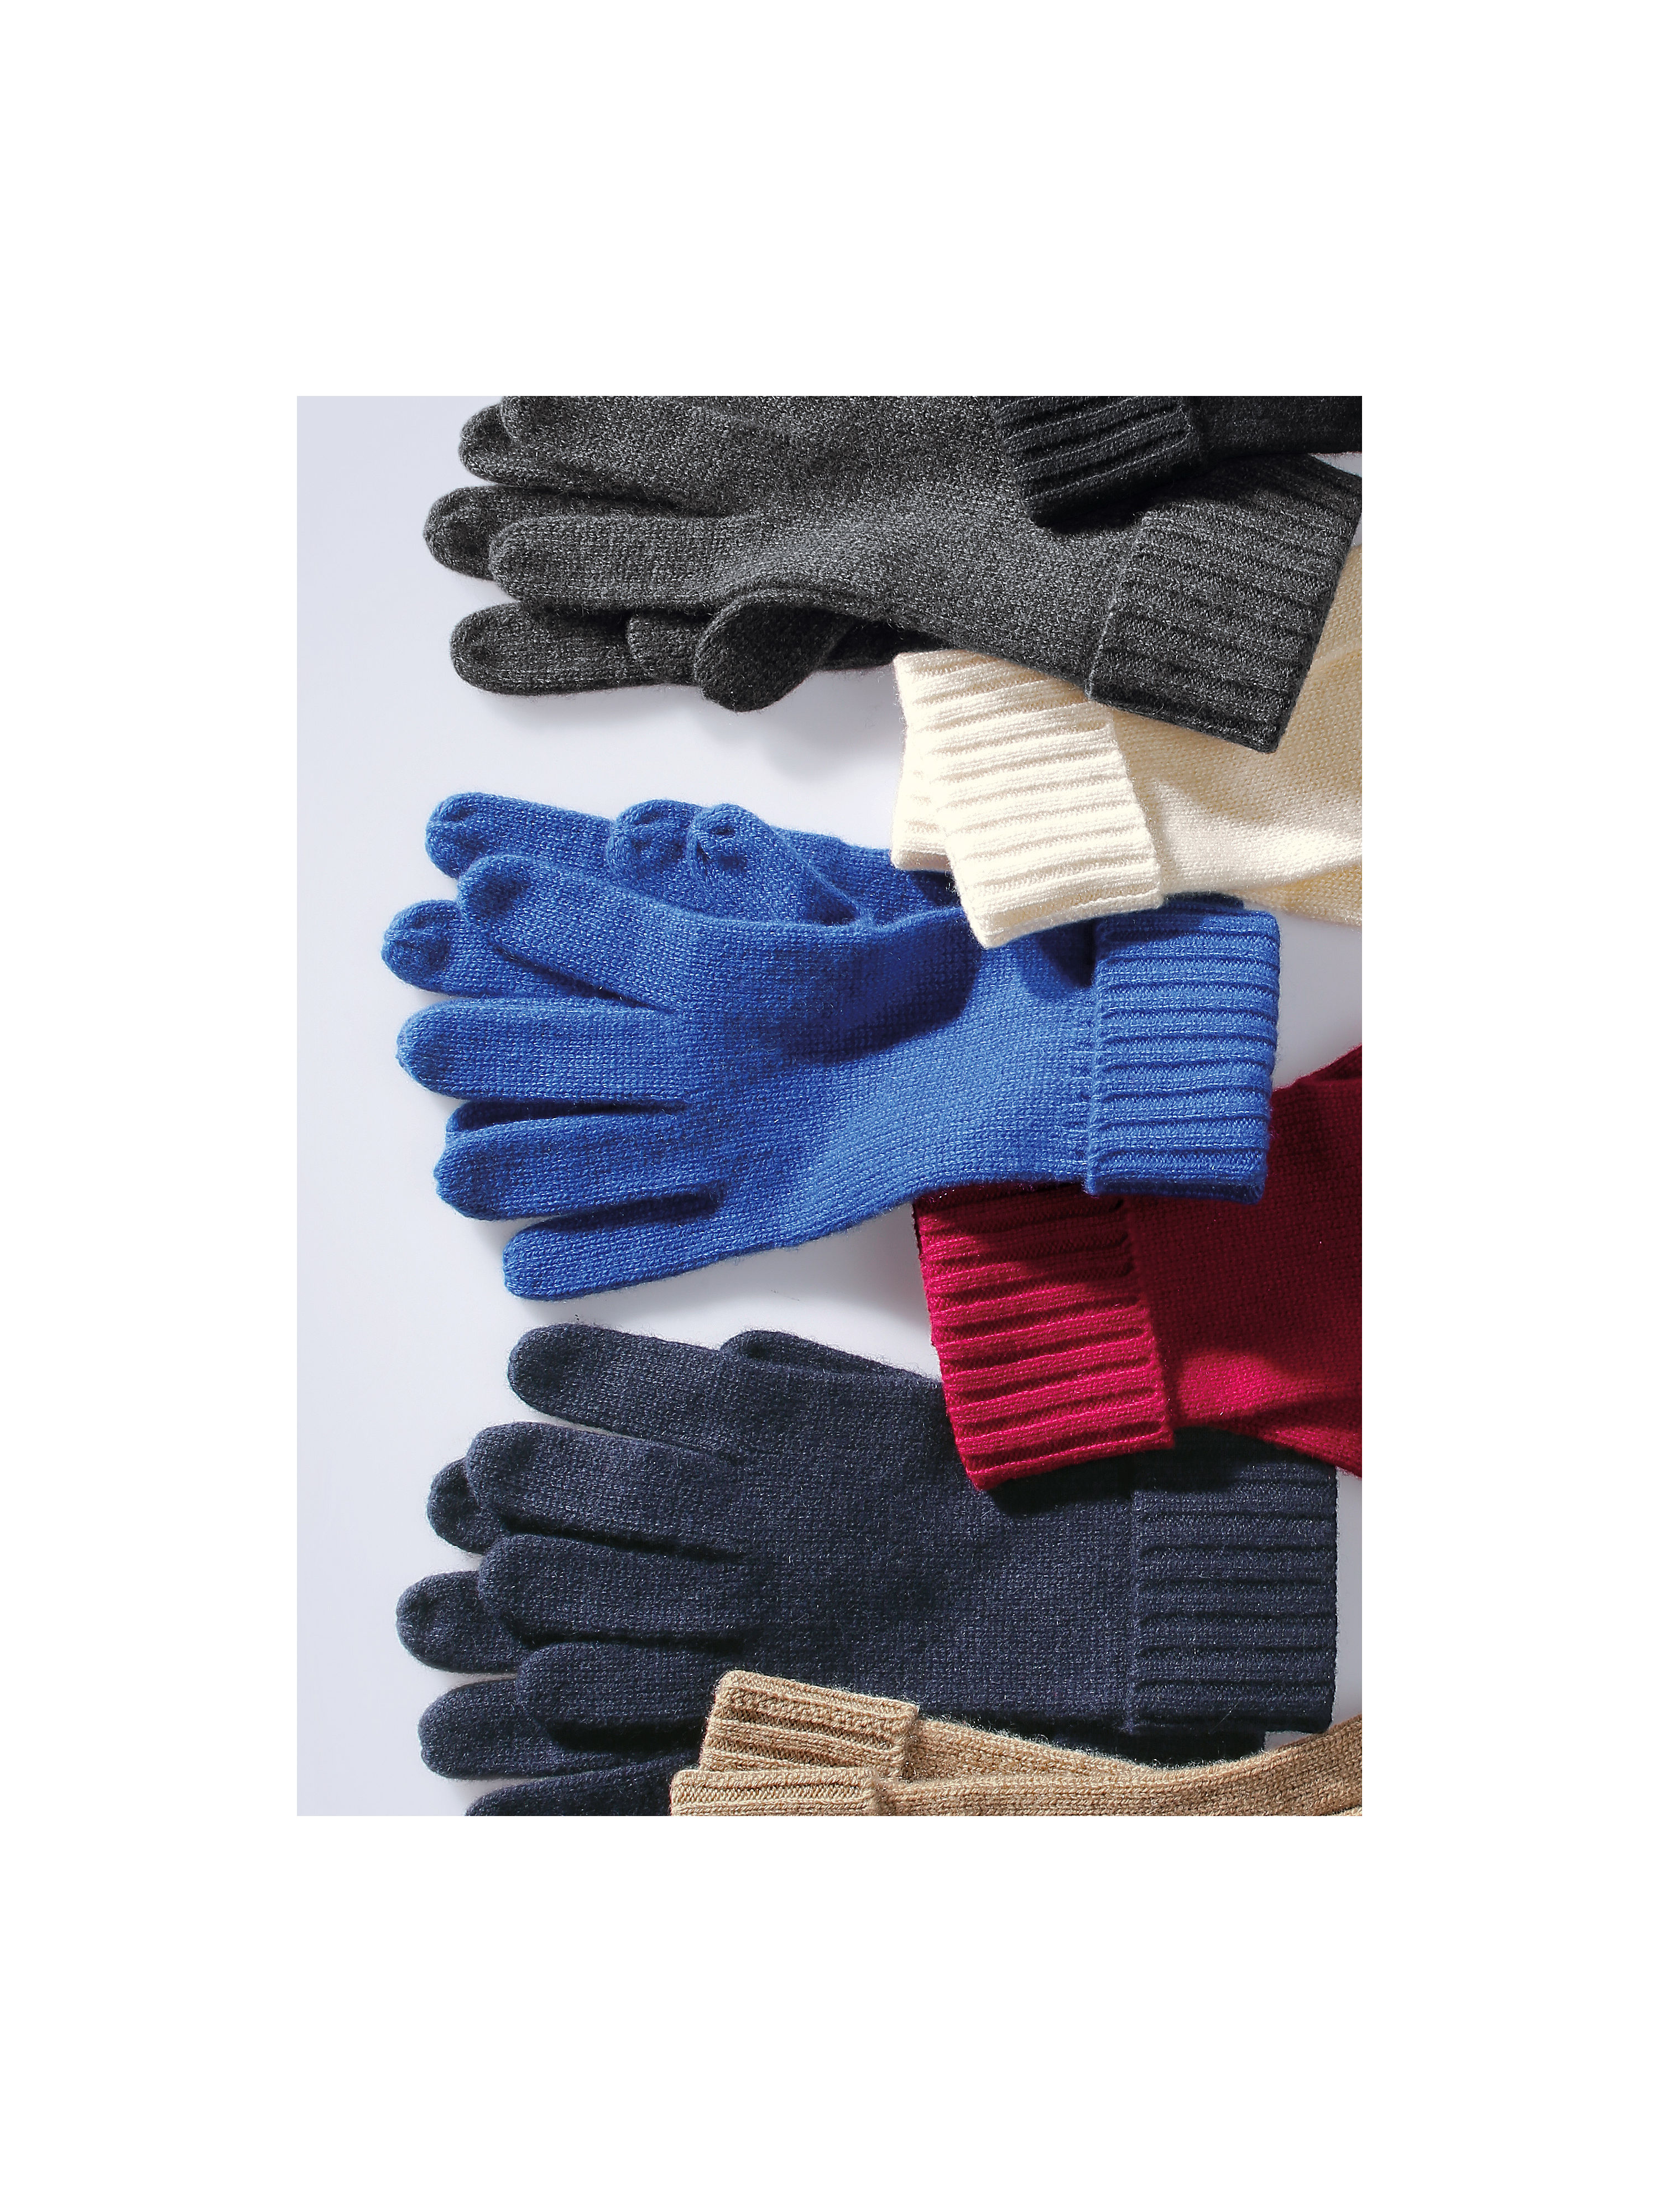 gloves-100-cashmere-from-peter-hahn-cashmere-green